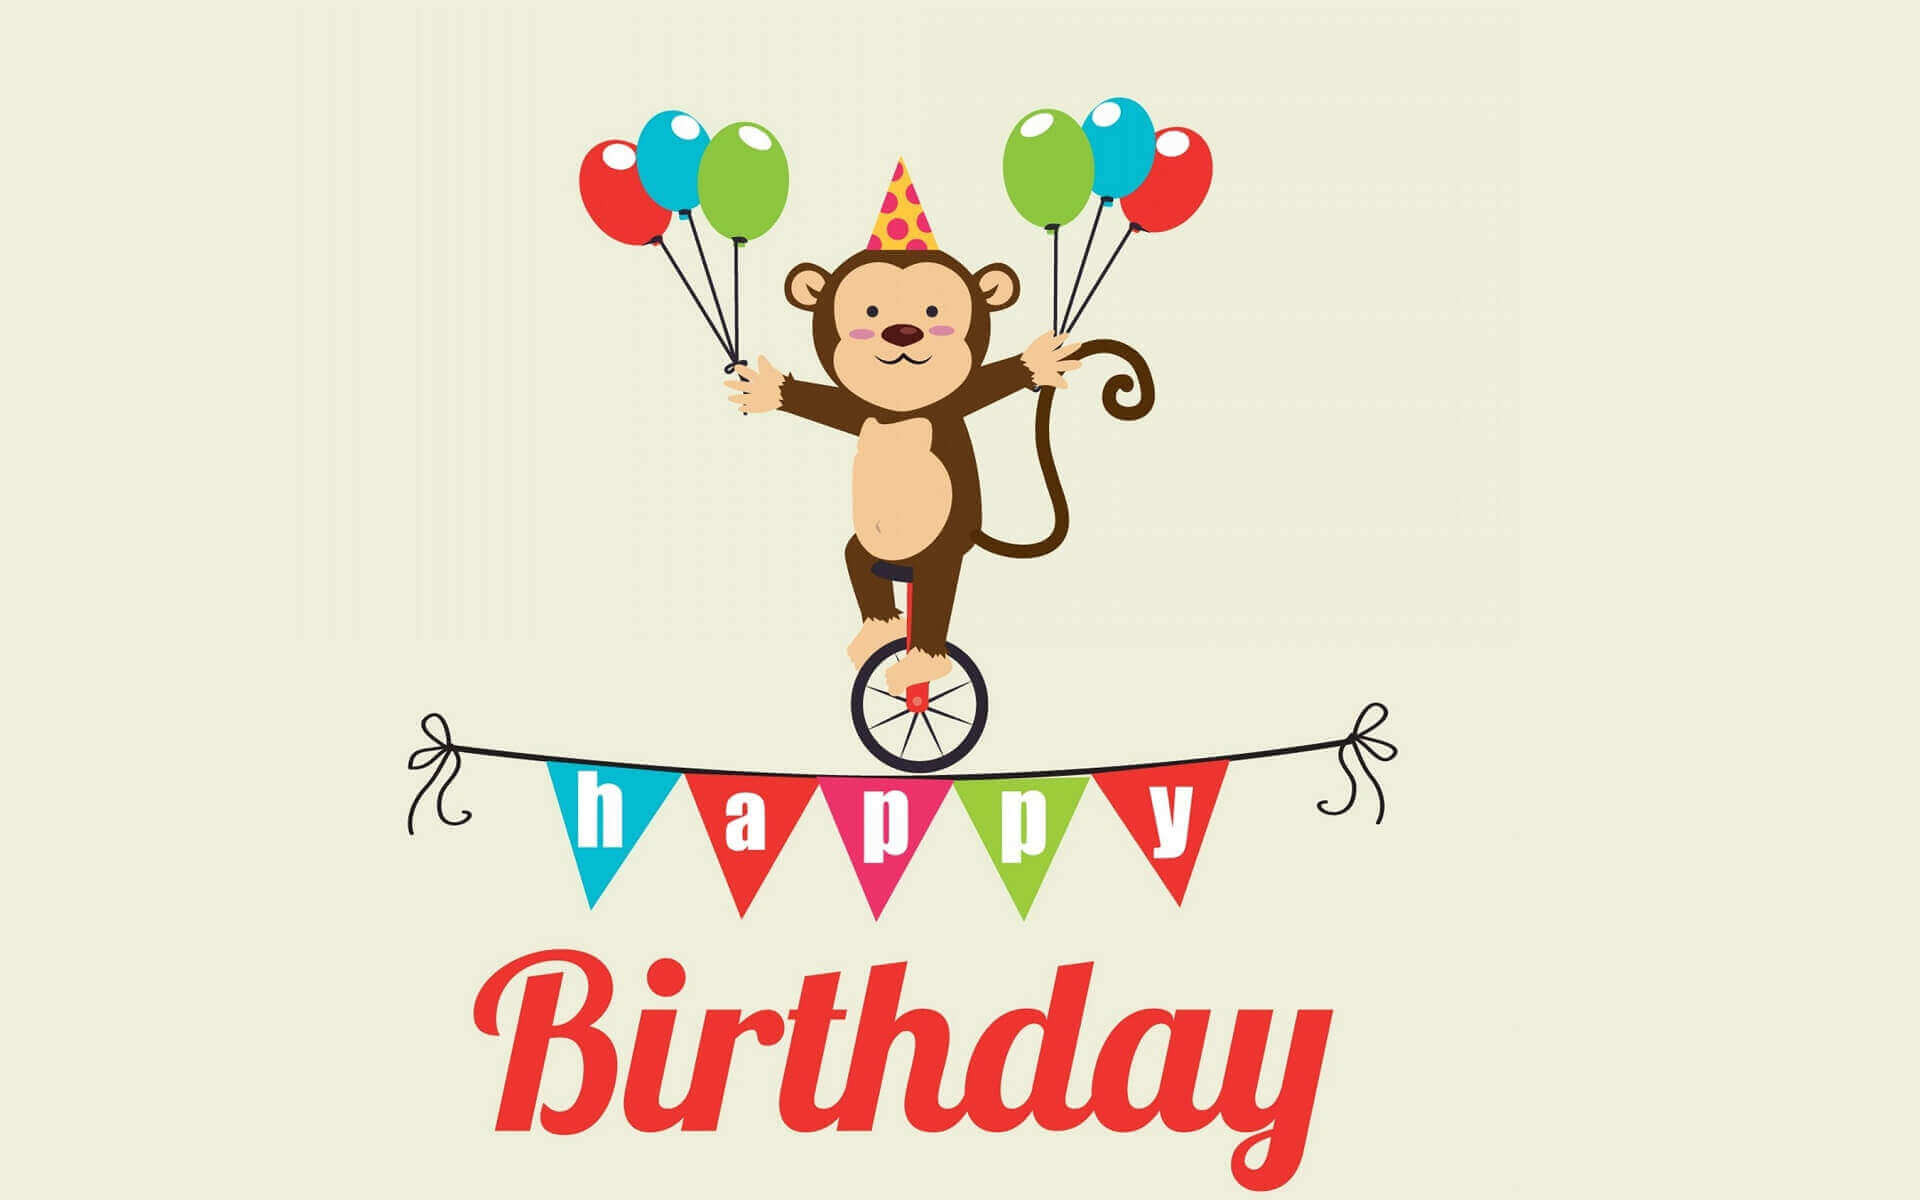 Birthday Wishes For Friend Funny  200 Funny Happy Birthday Wishes Quotes Ever FungiStaaan